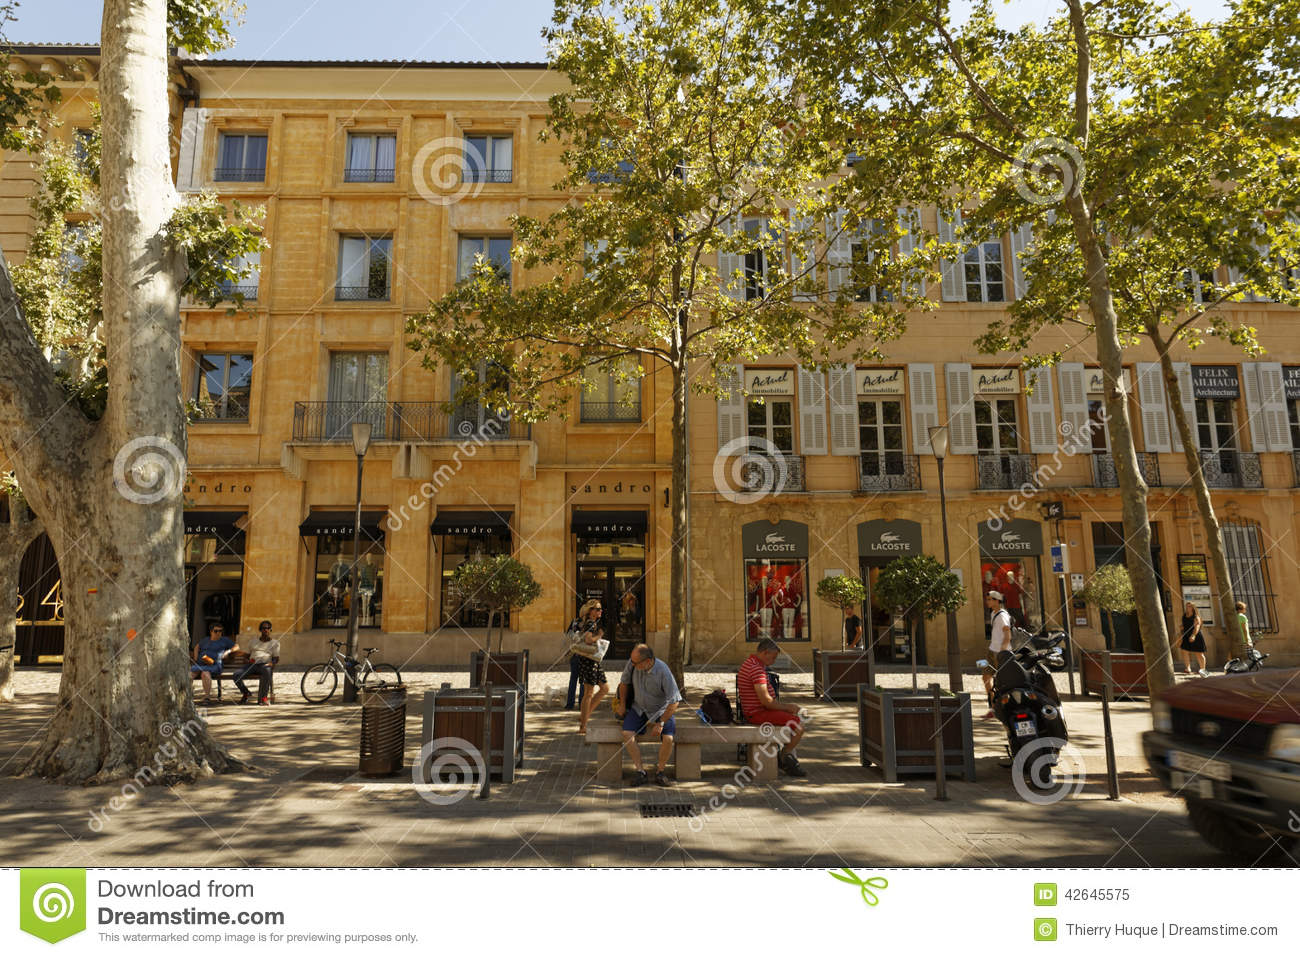 cours mirabeau aix en provence image ditorial. Black Bedroom Furniture Sets. Home Design Ideas